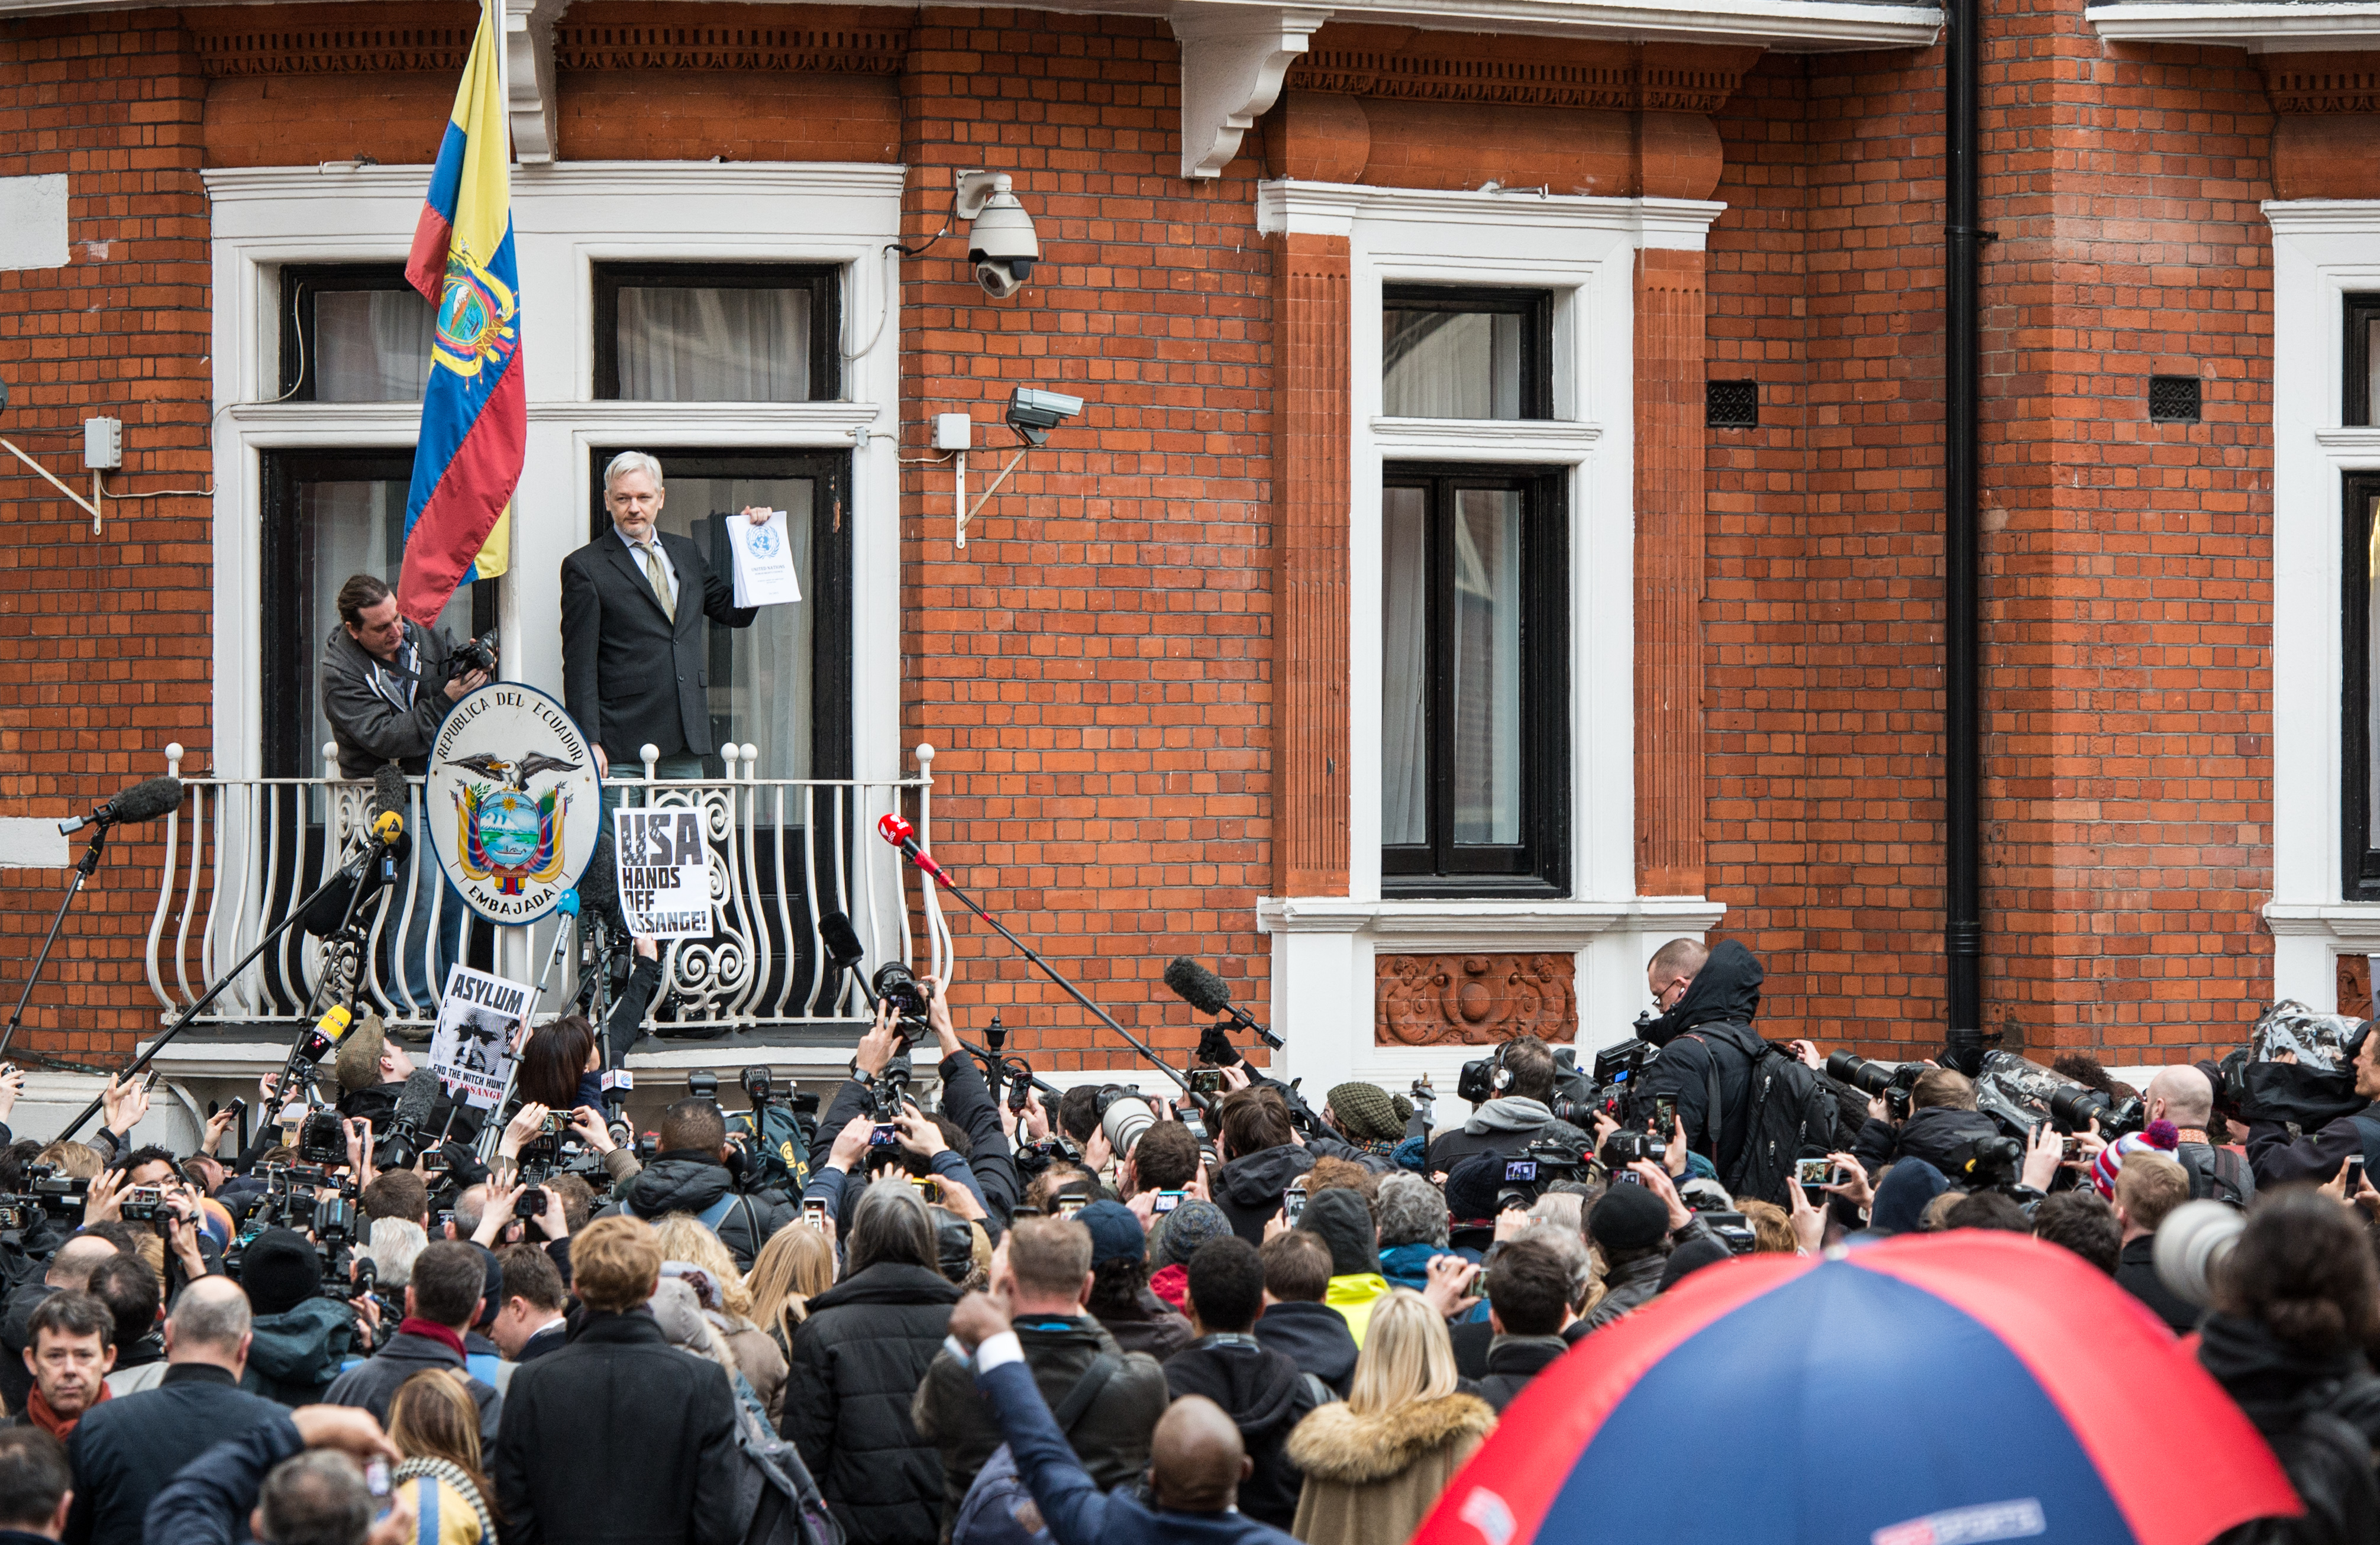 Wikileaks founder Julian Assange speaks from the balcony of the Ecuadorian embassy where  he continues to seek asylum following an extradition request from Sweden, on February 5, 2016 in London.